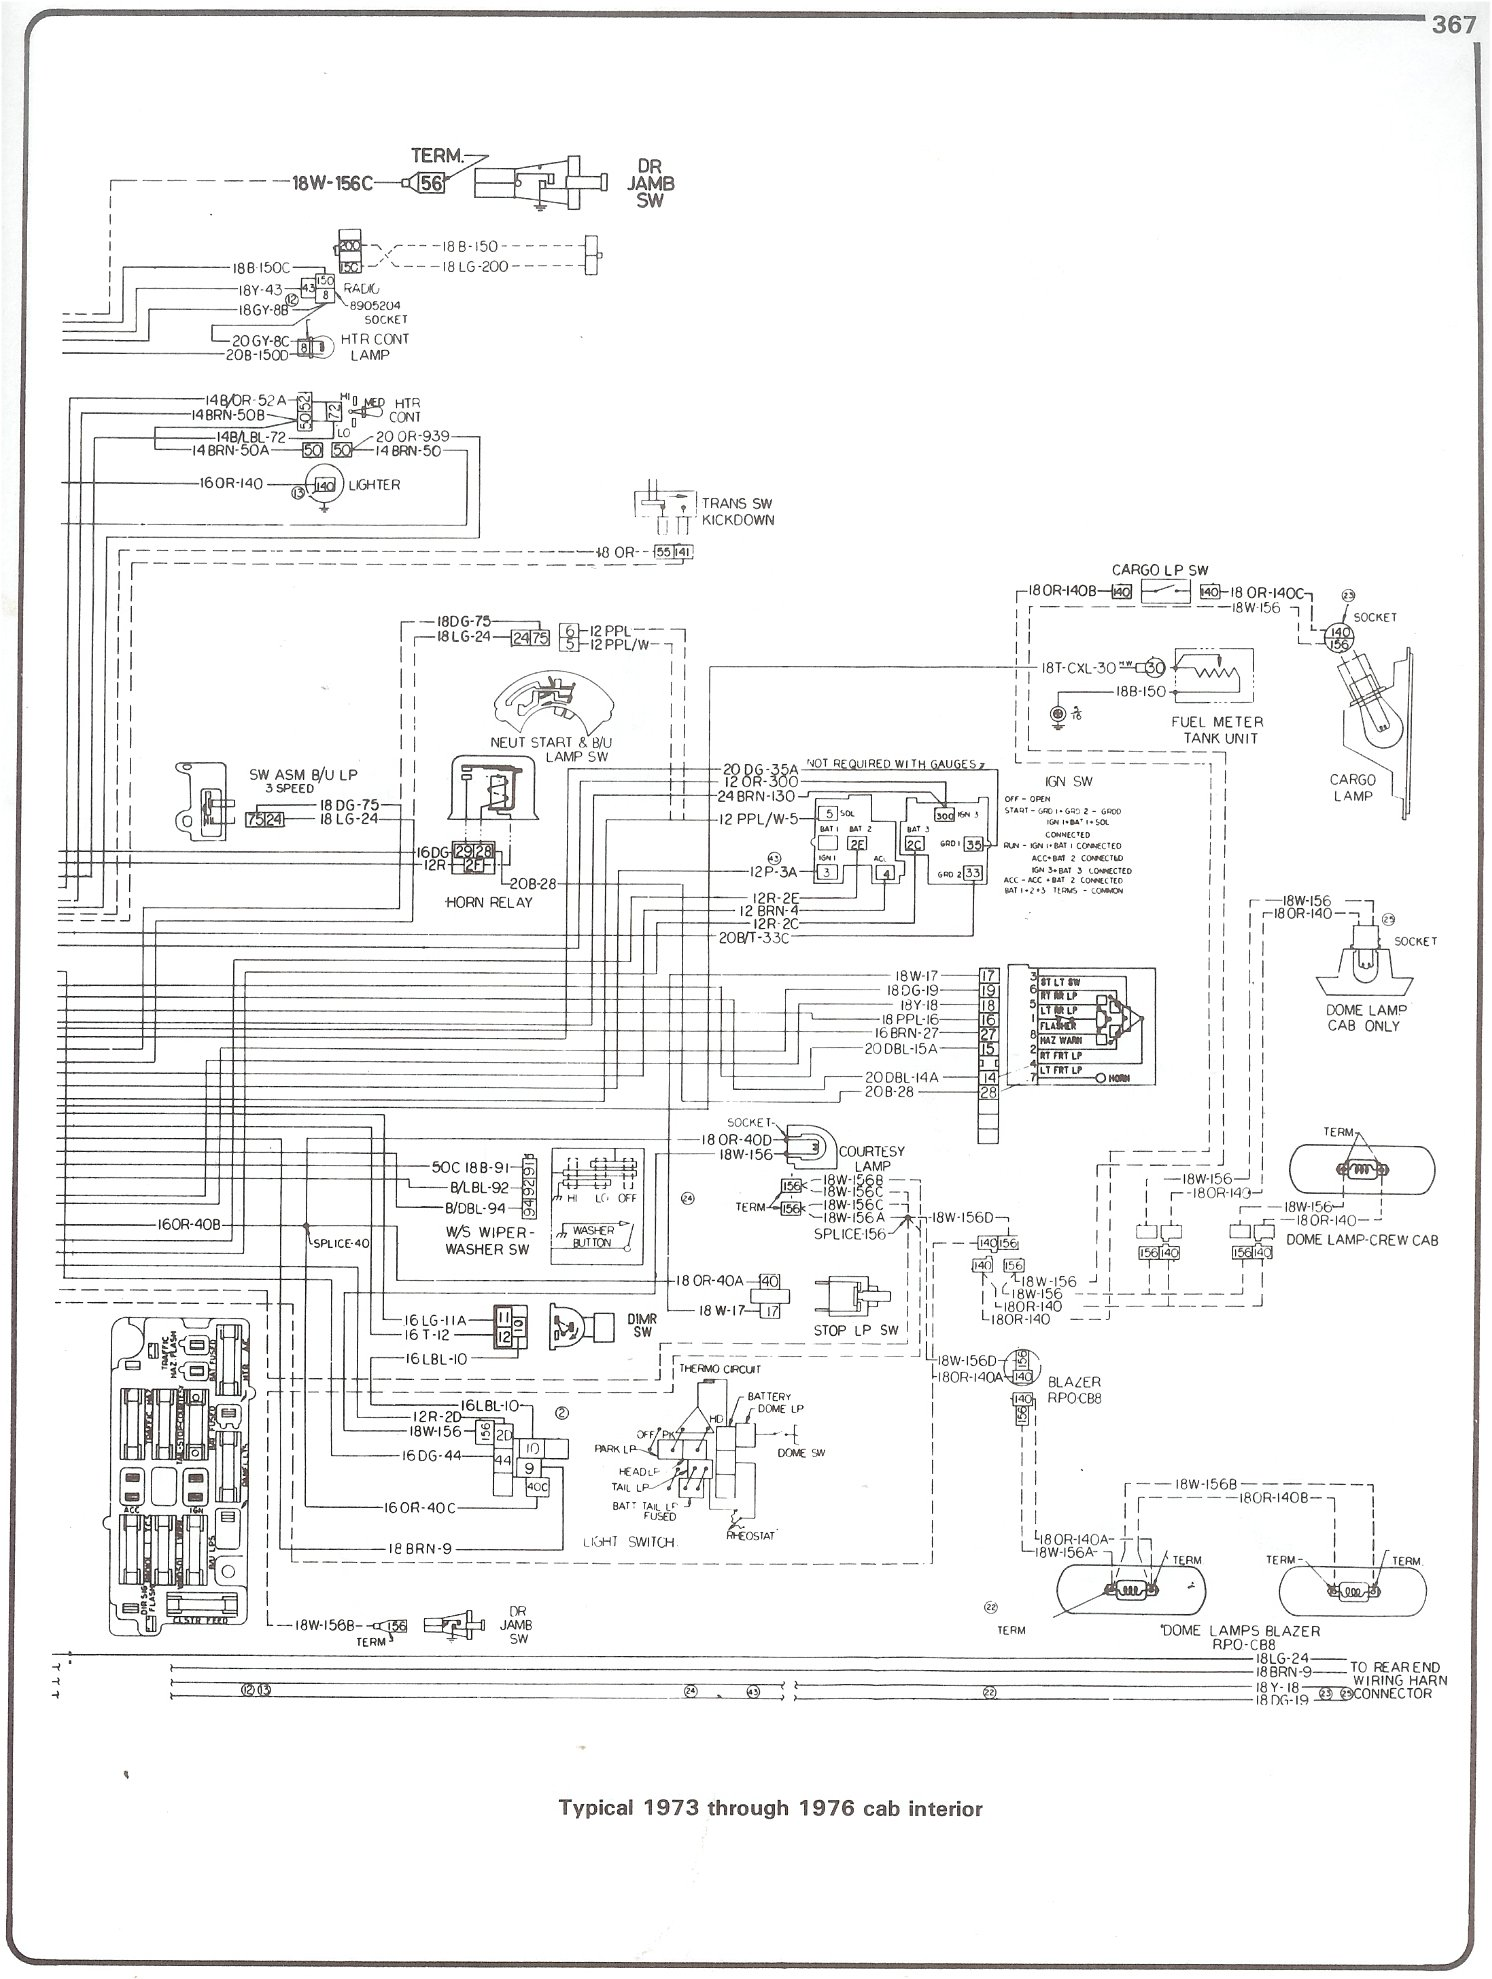 Complete 73 87 Wiring Diagrams 79 Ford Alternator Diagram Free Picture 76 Cab Interior